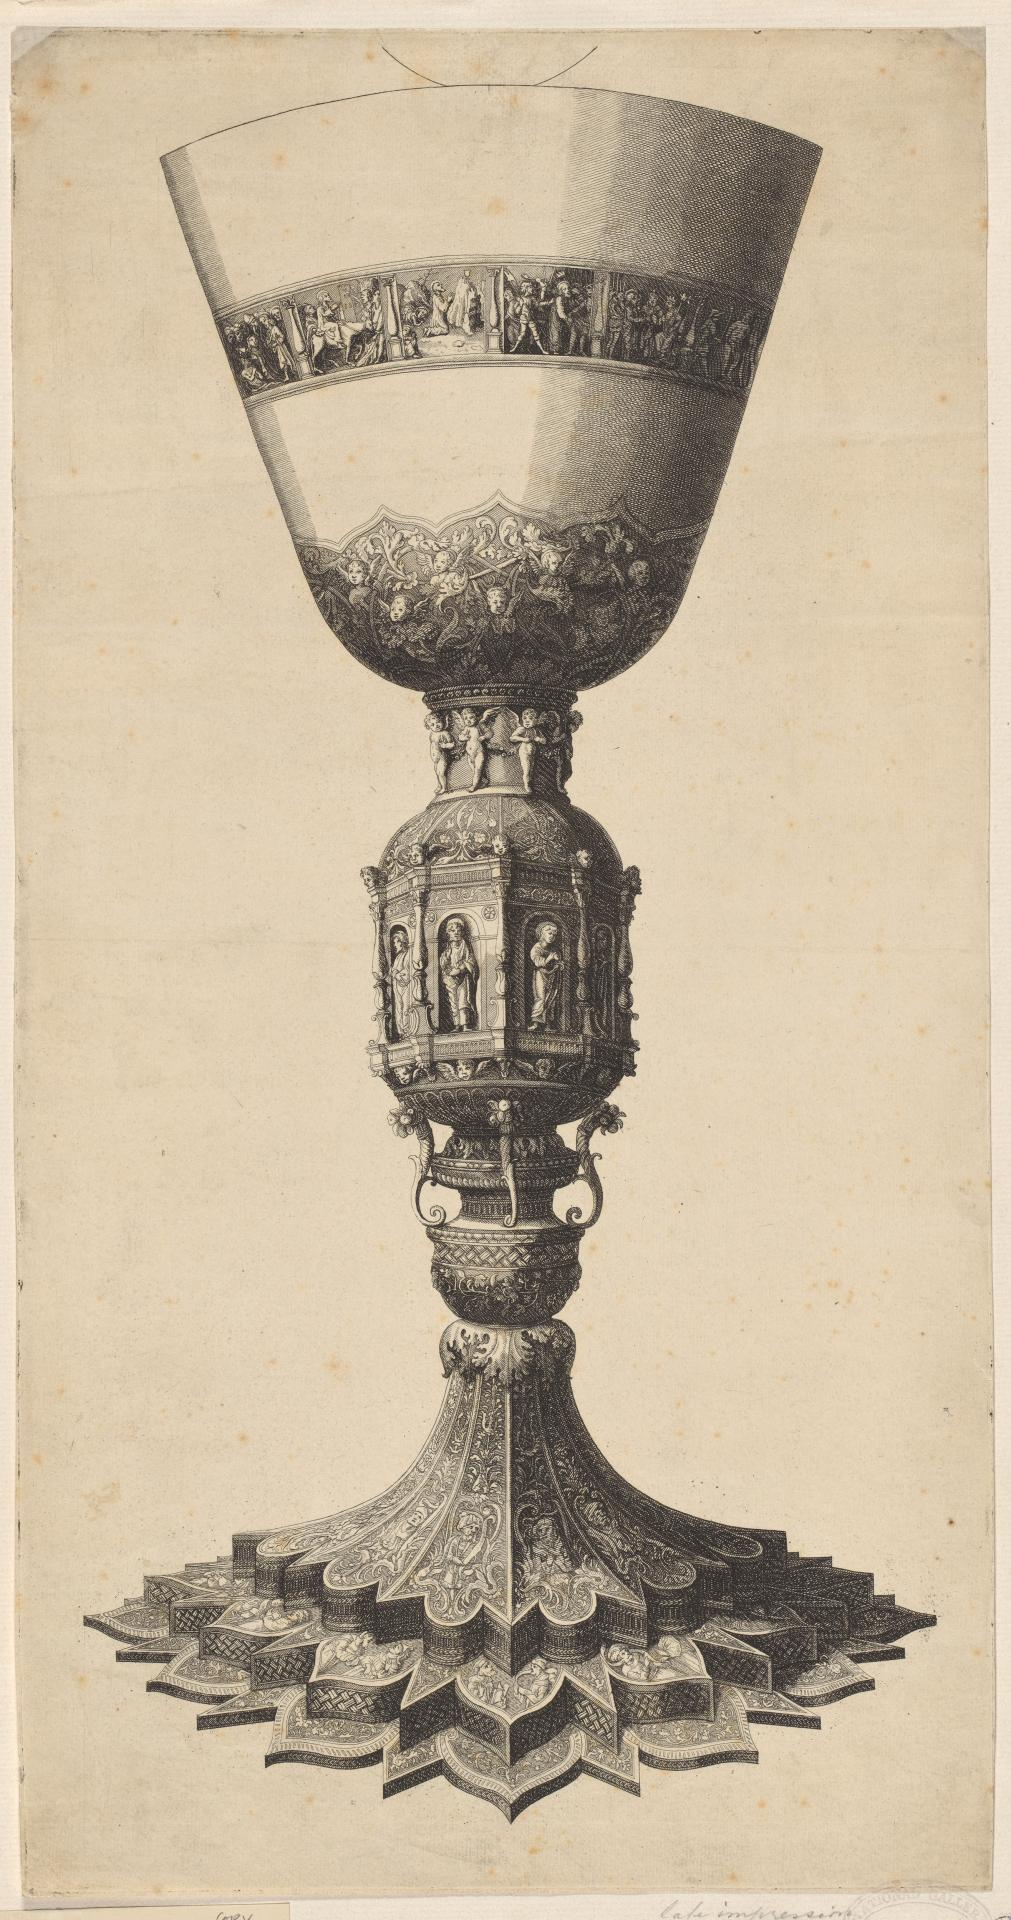 A Chalice, after Mantegna - Chalice, drinking horn, etc.